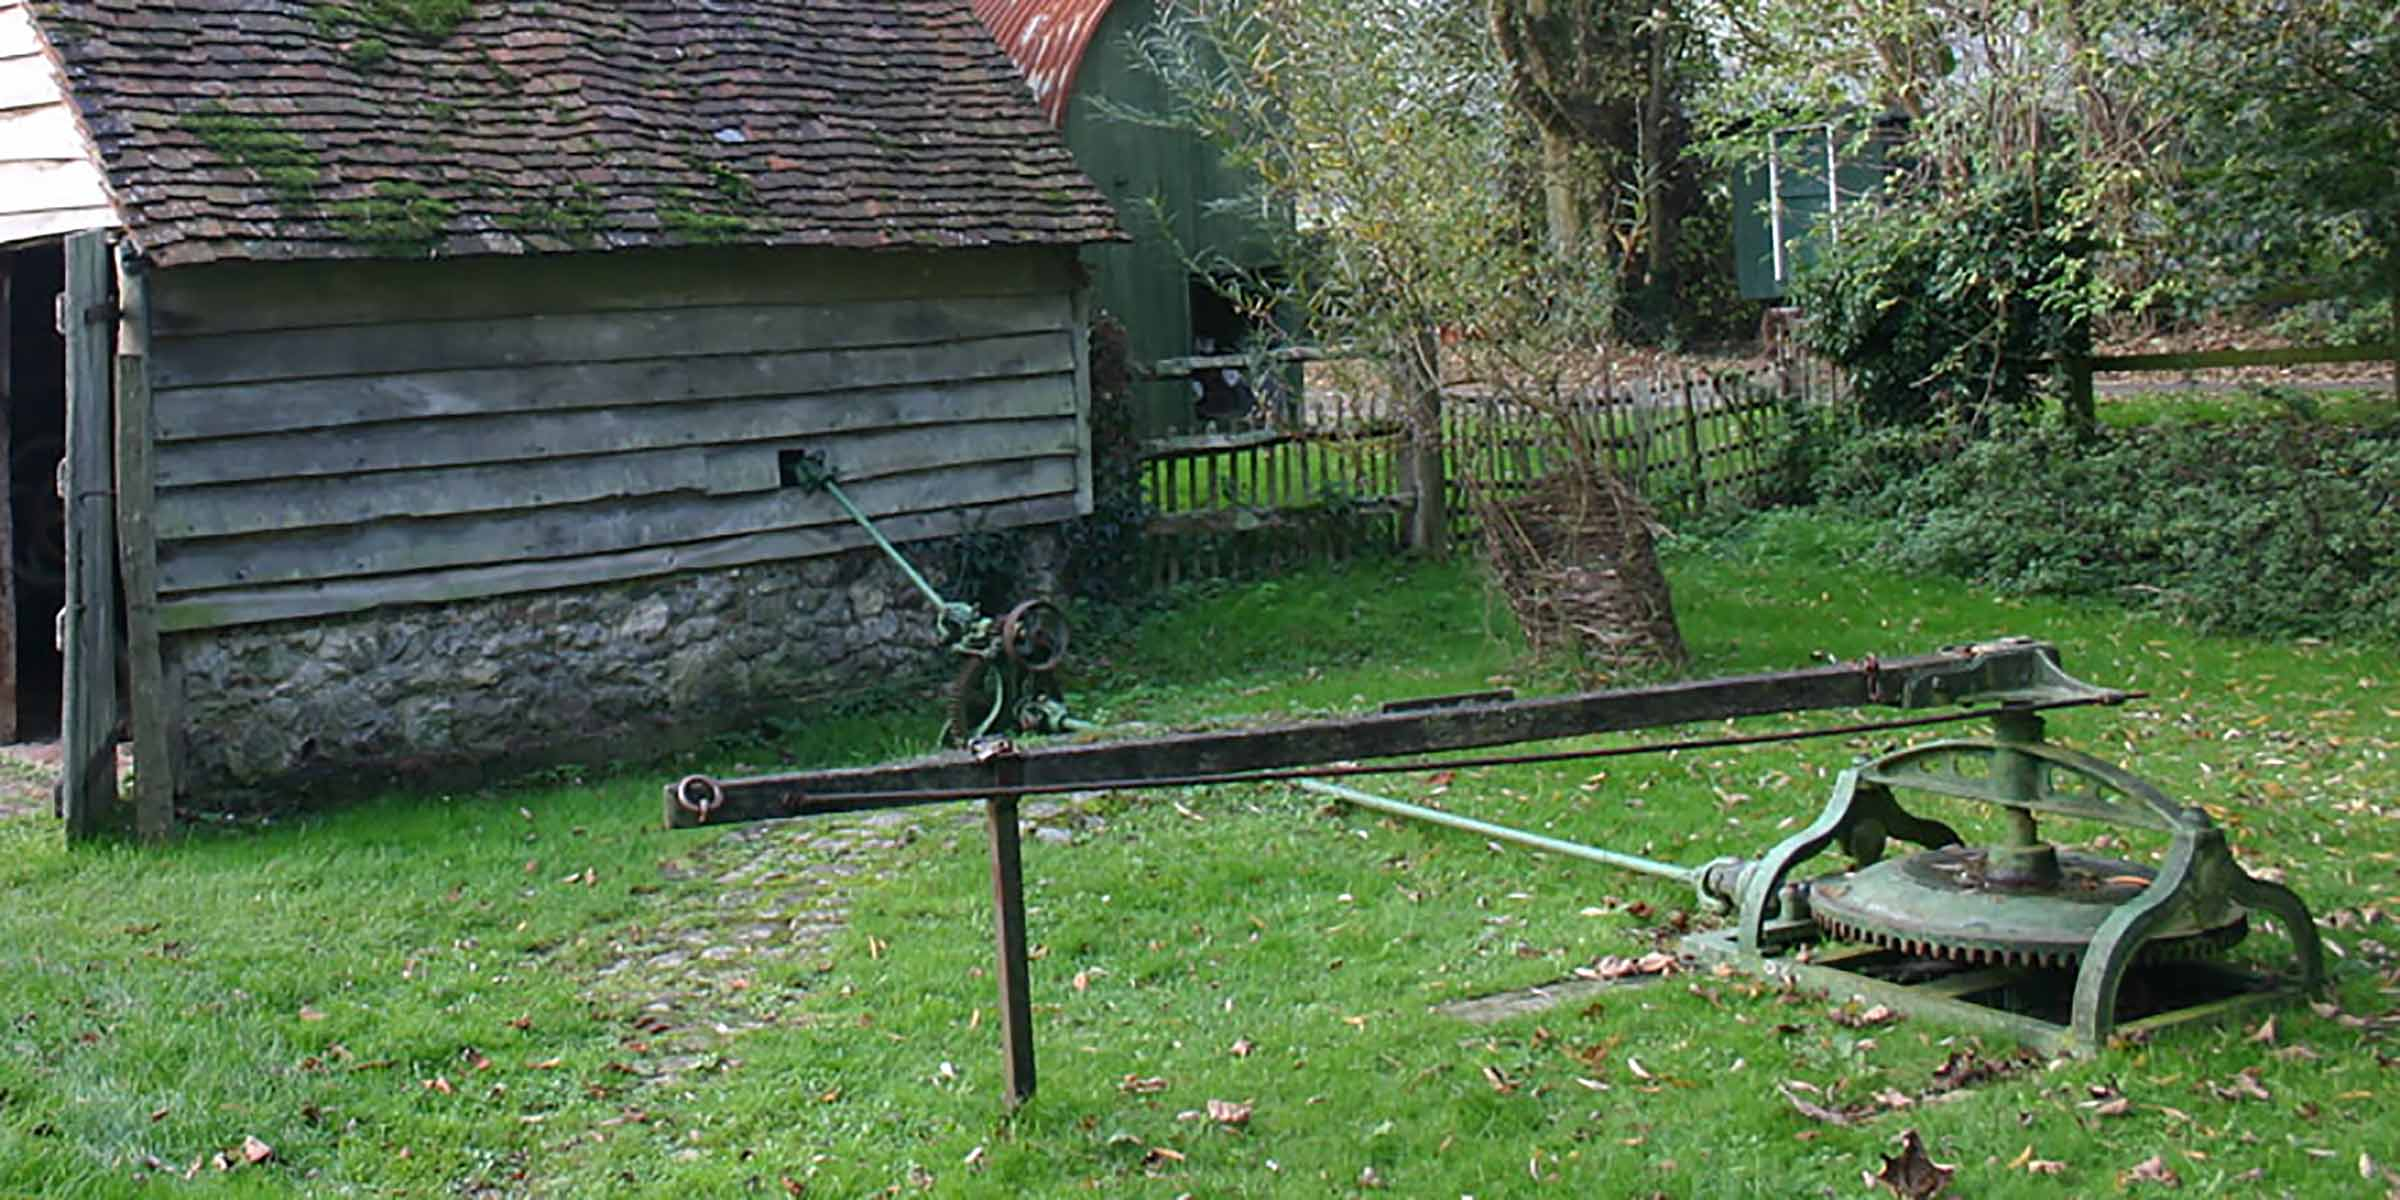 Chaffcutter from East Grinstead, Sussex